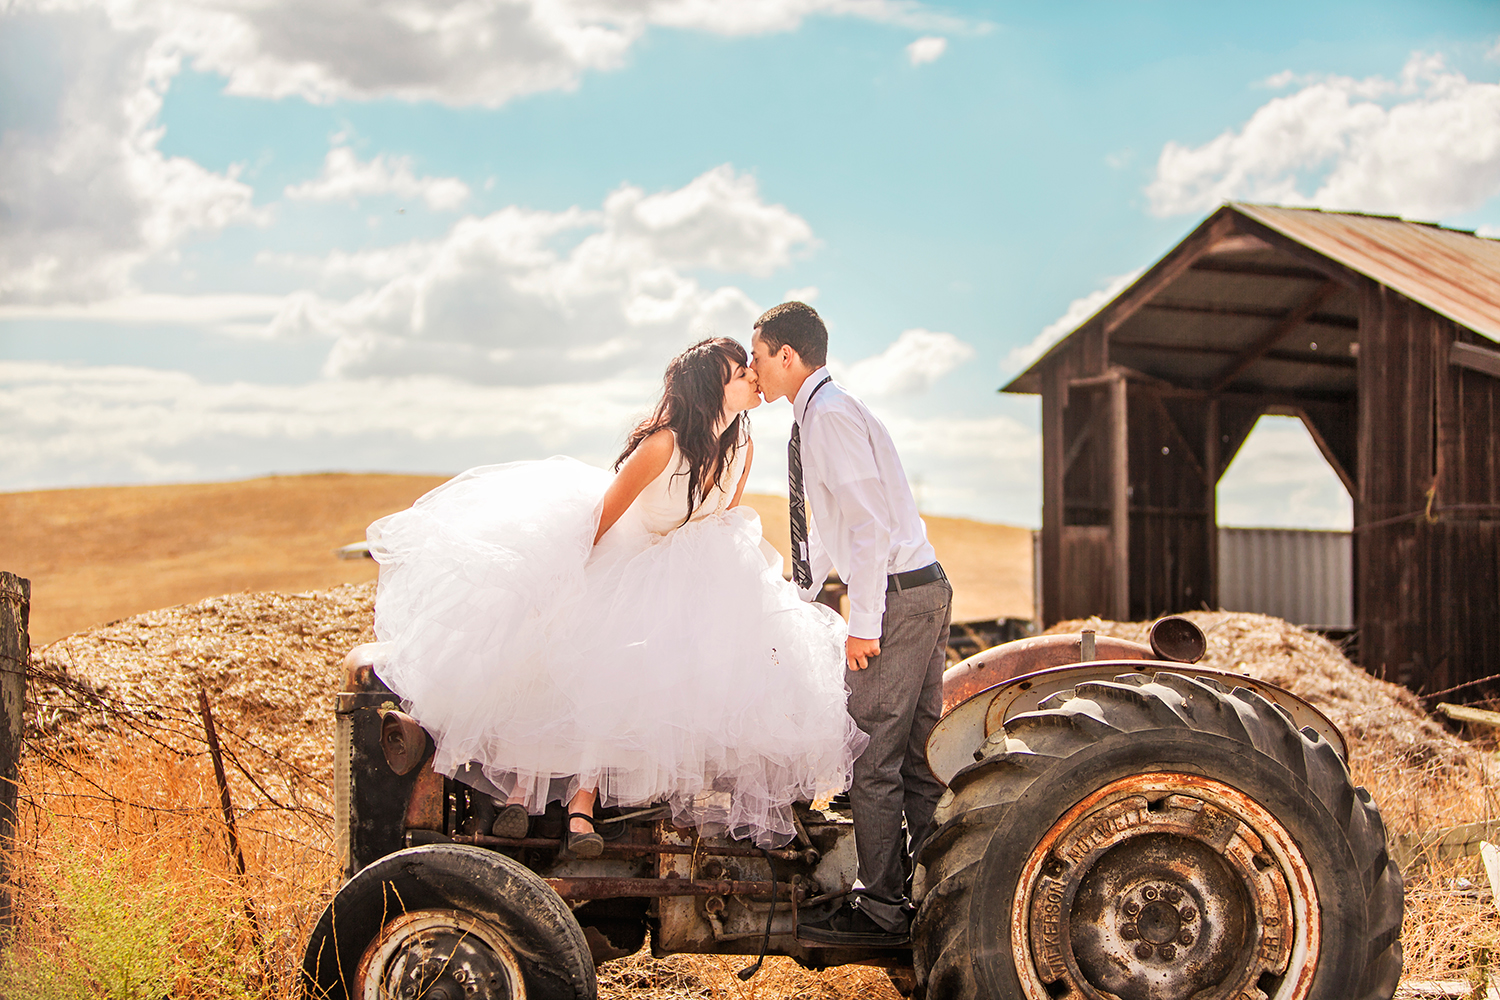 Dena_Rooney_Wedding_Photographer_Ranch_011.jpg